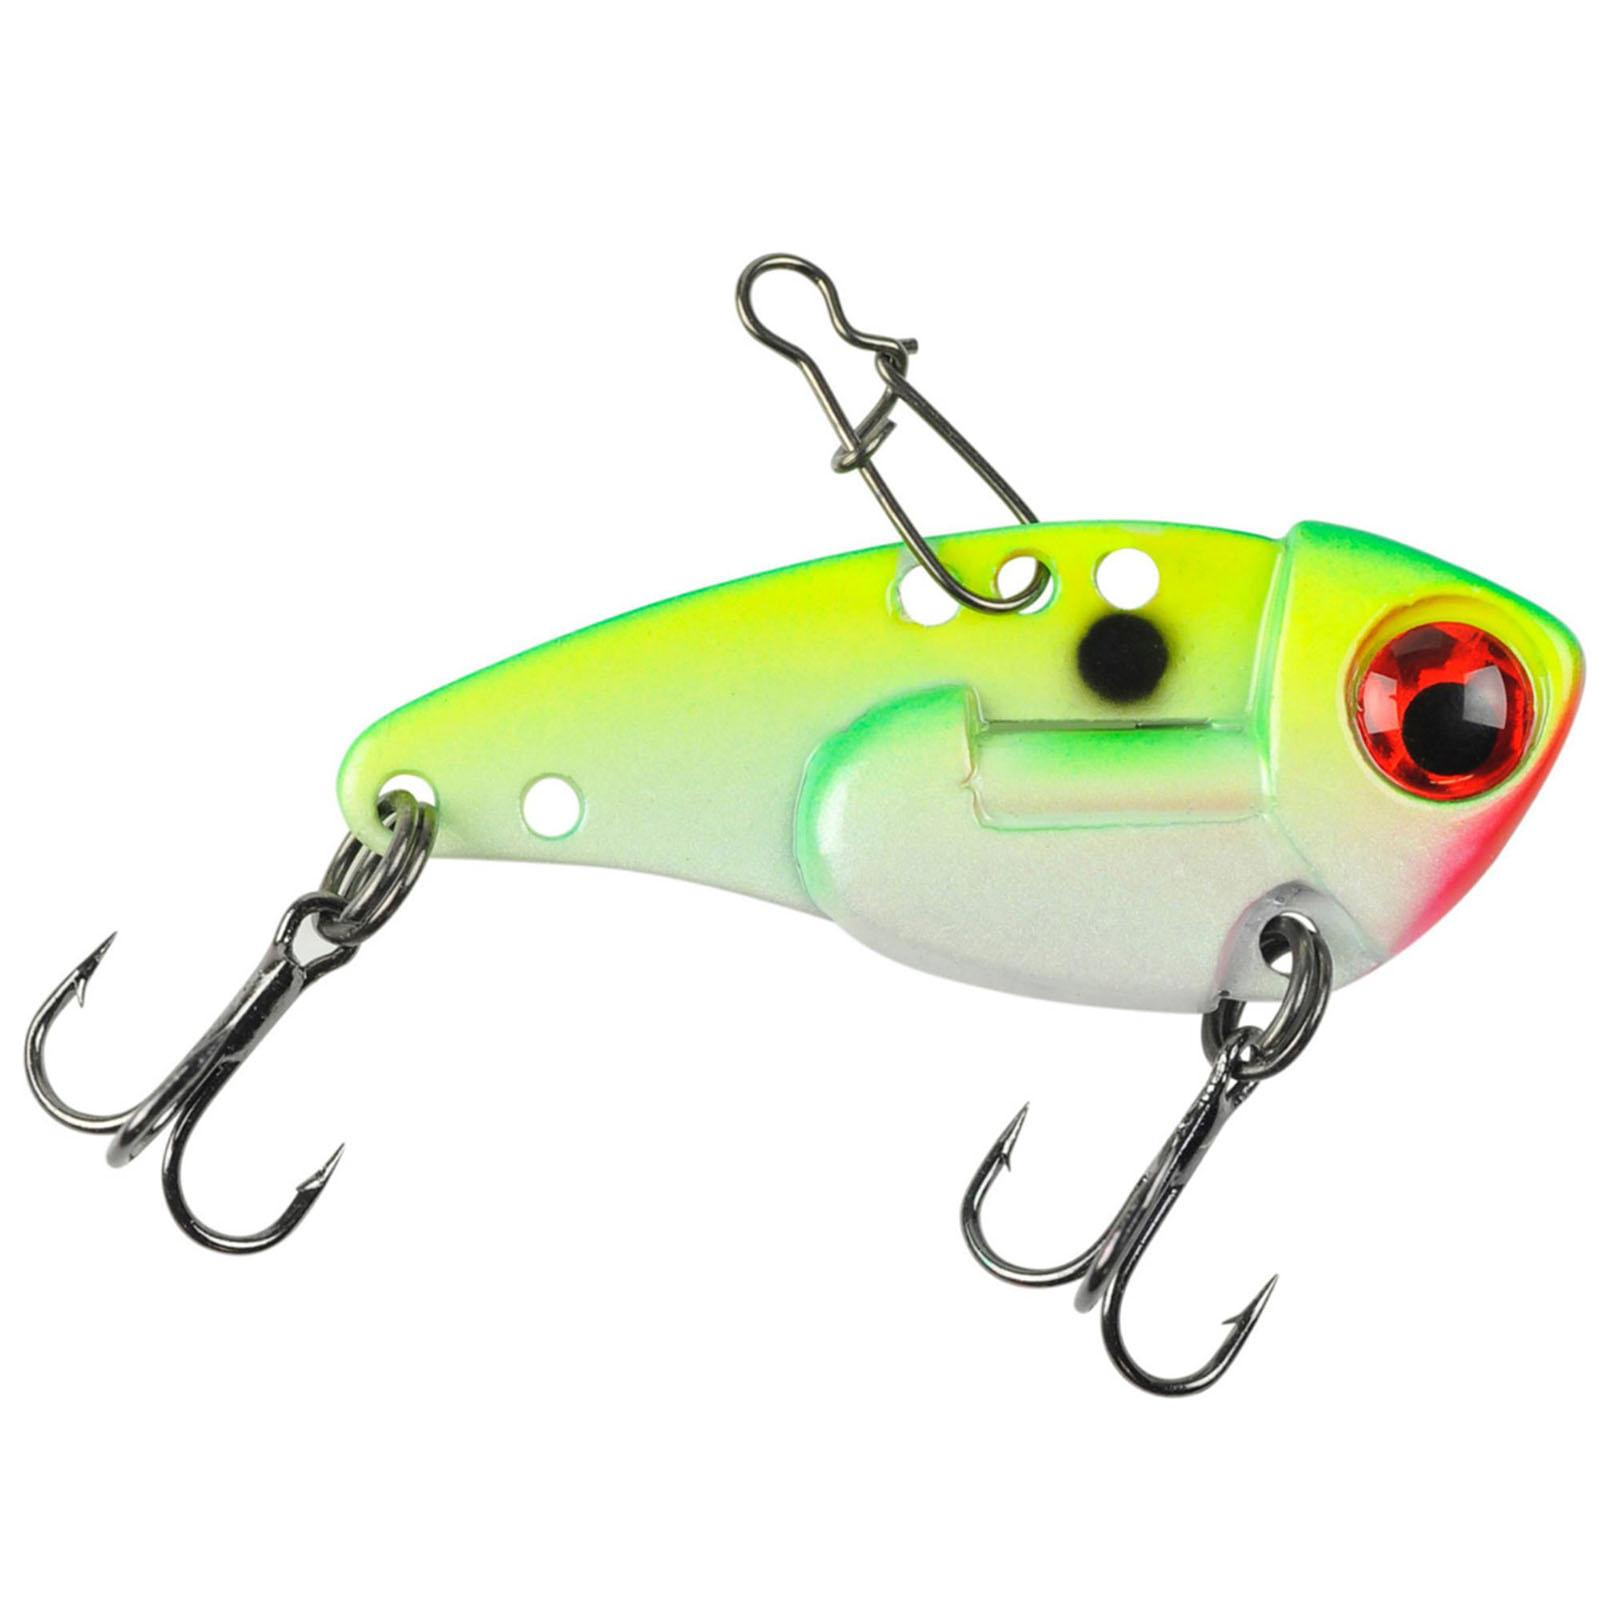 Johnson Thinfisher Blade Bait Color Chartreuse Pearl Weight 3/16 oz